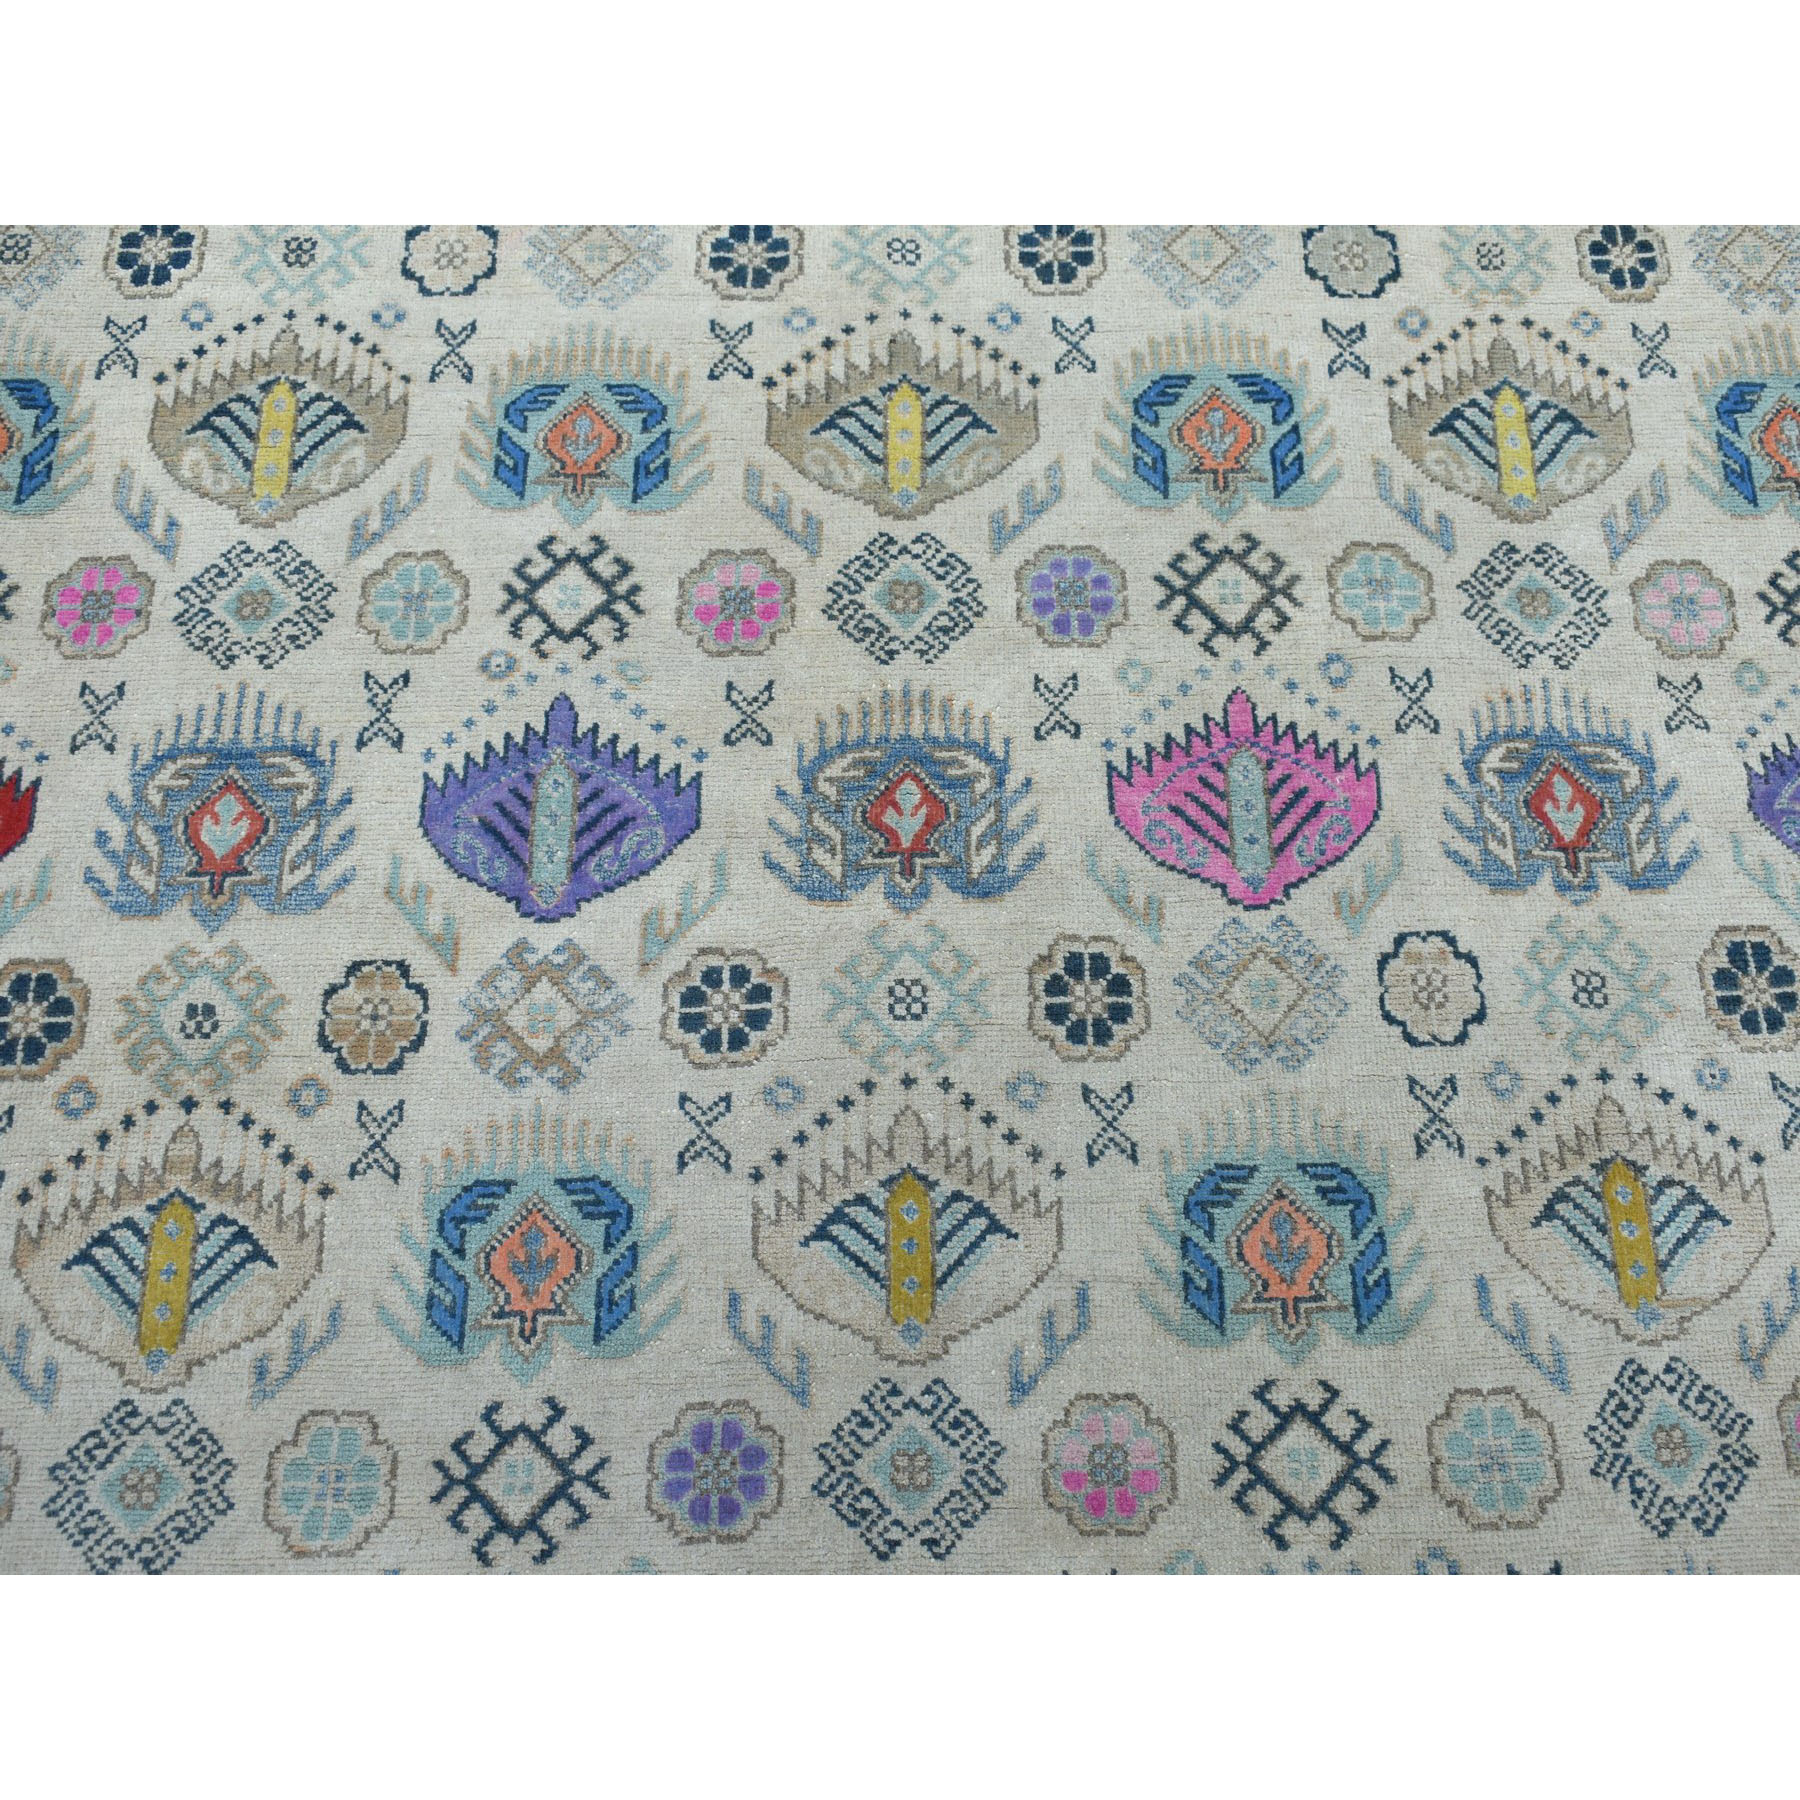 7-10 x9-10  Colorful Fusion Kazak Pure Wool Hand-Knotted Oriental Rug